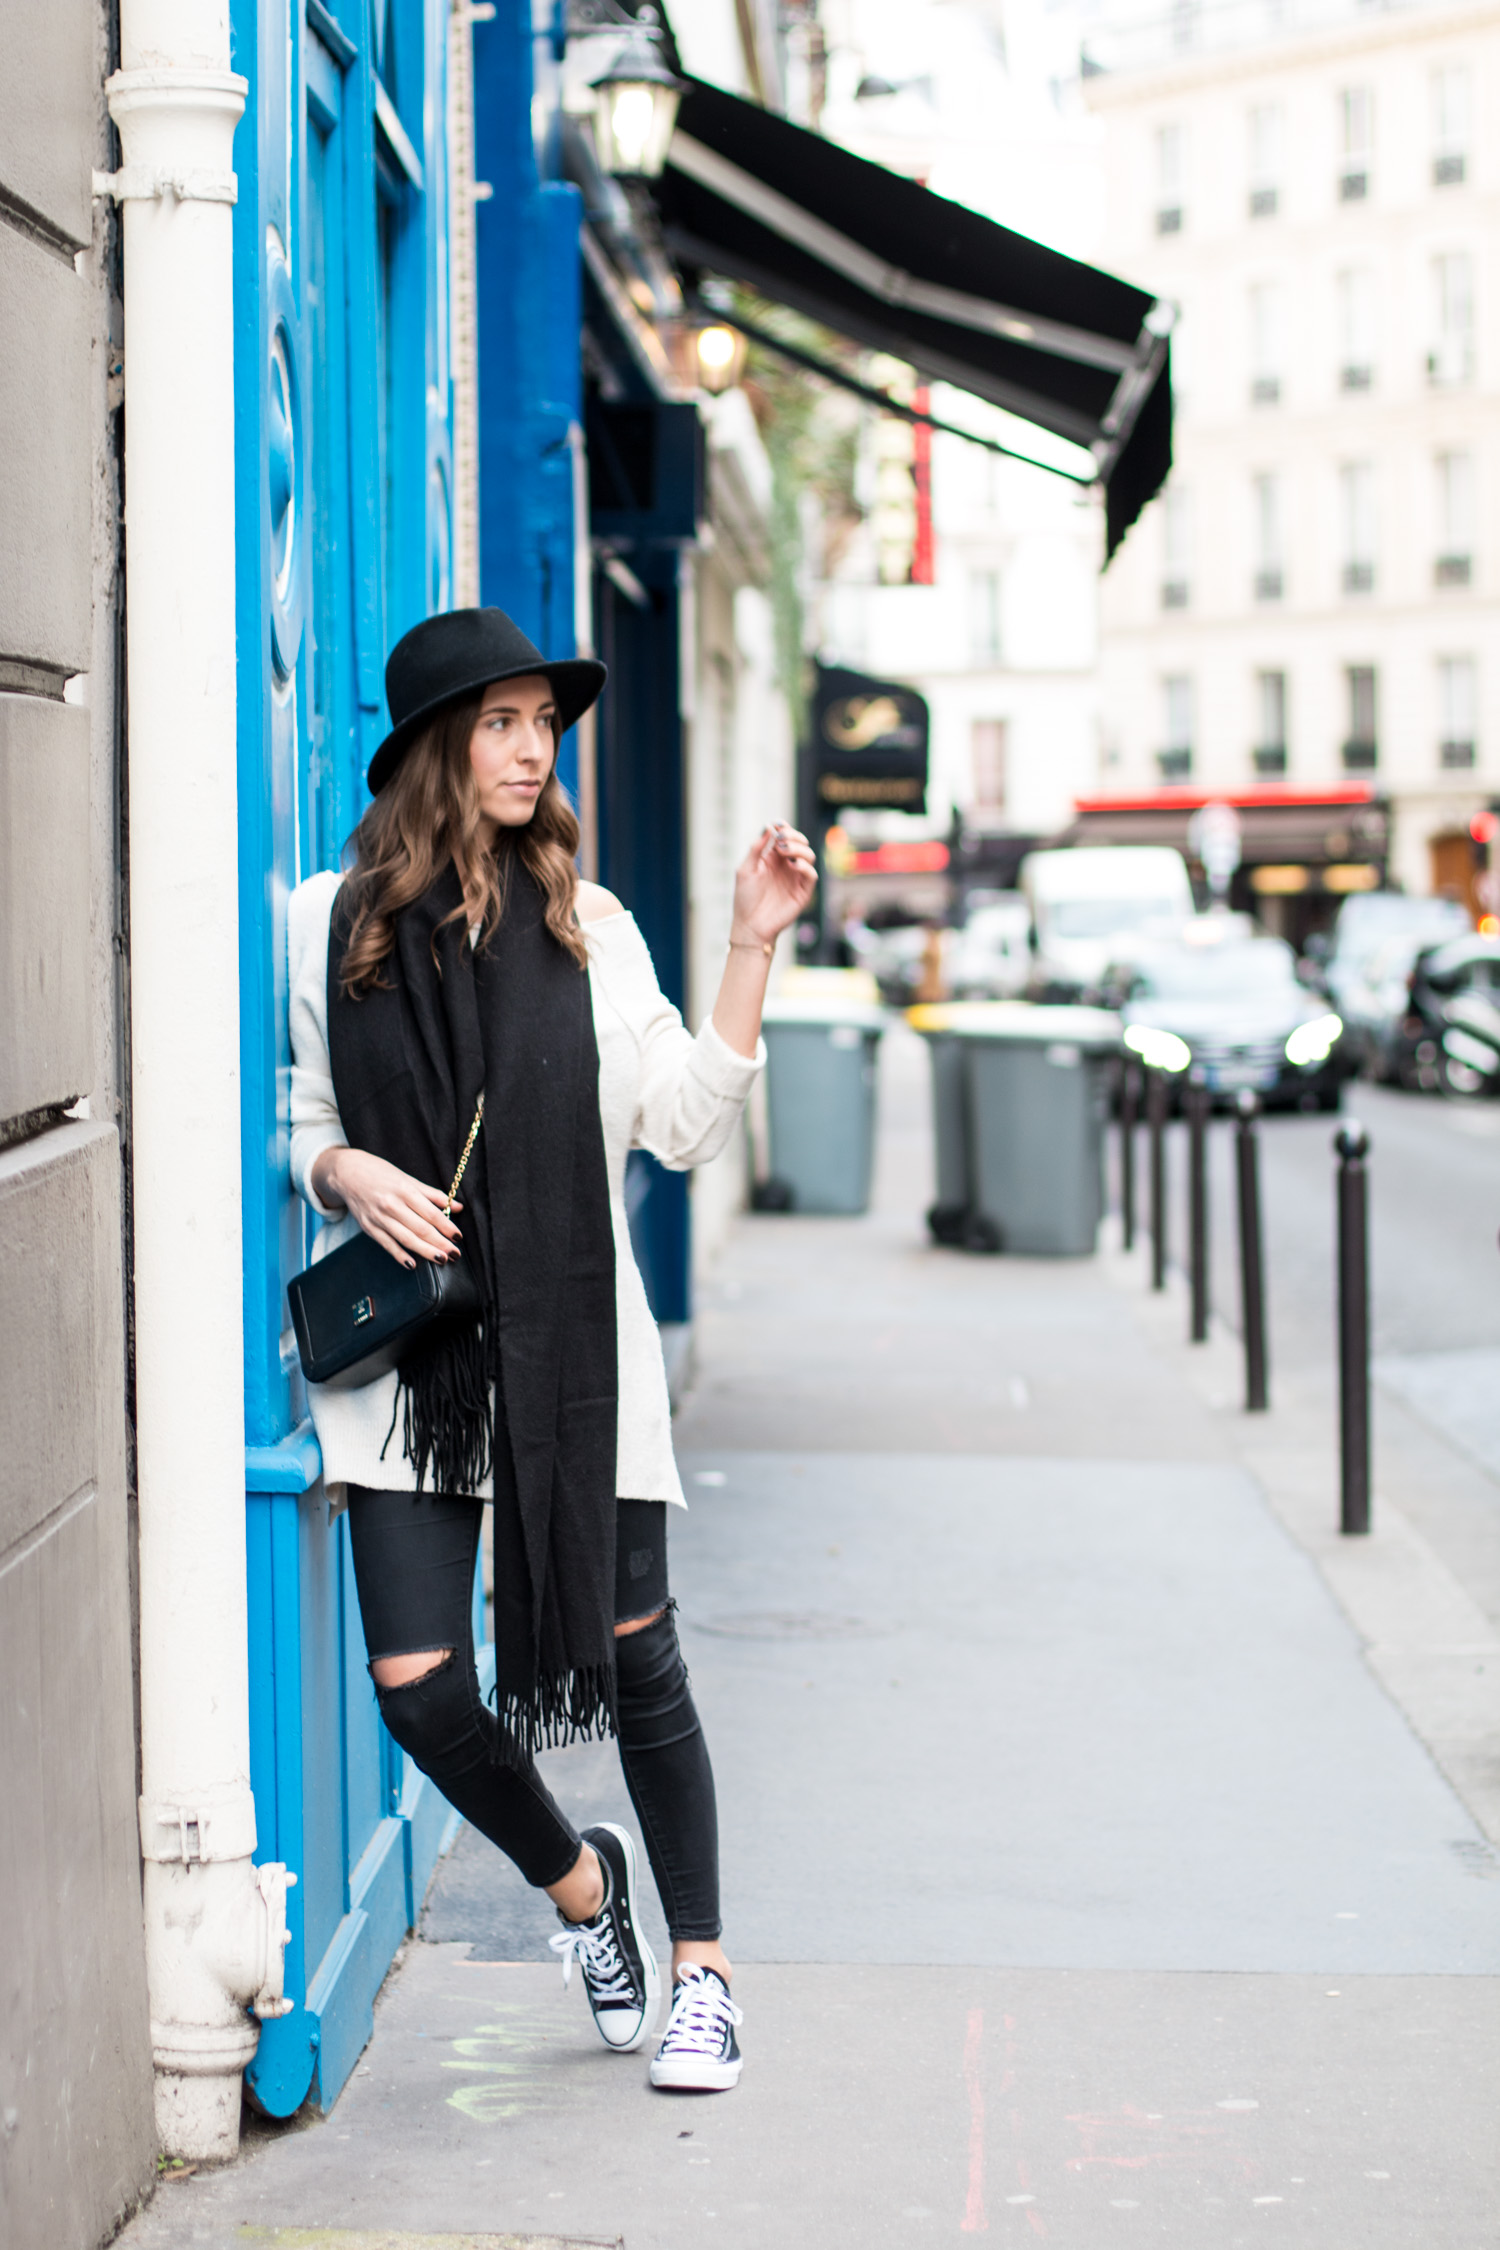 Paris-Travel-Look-3